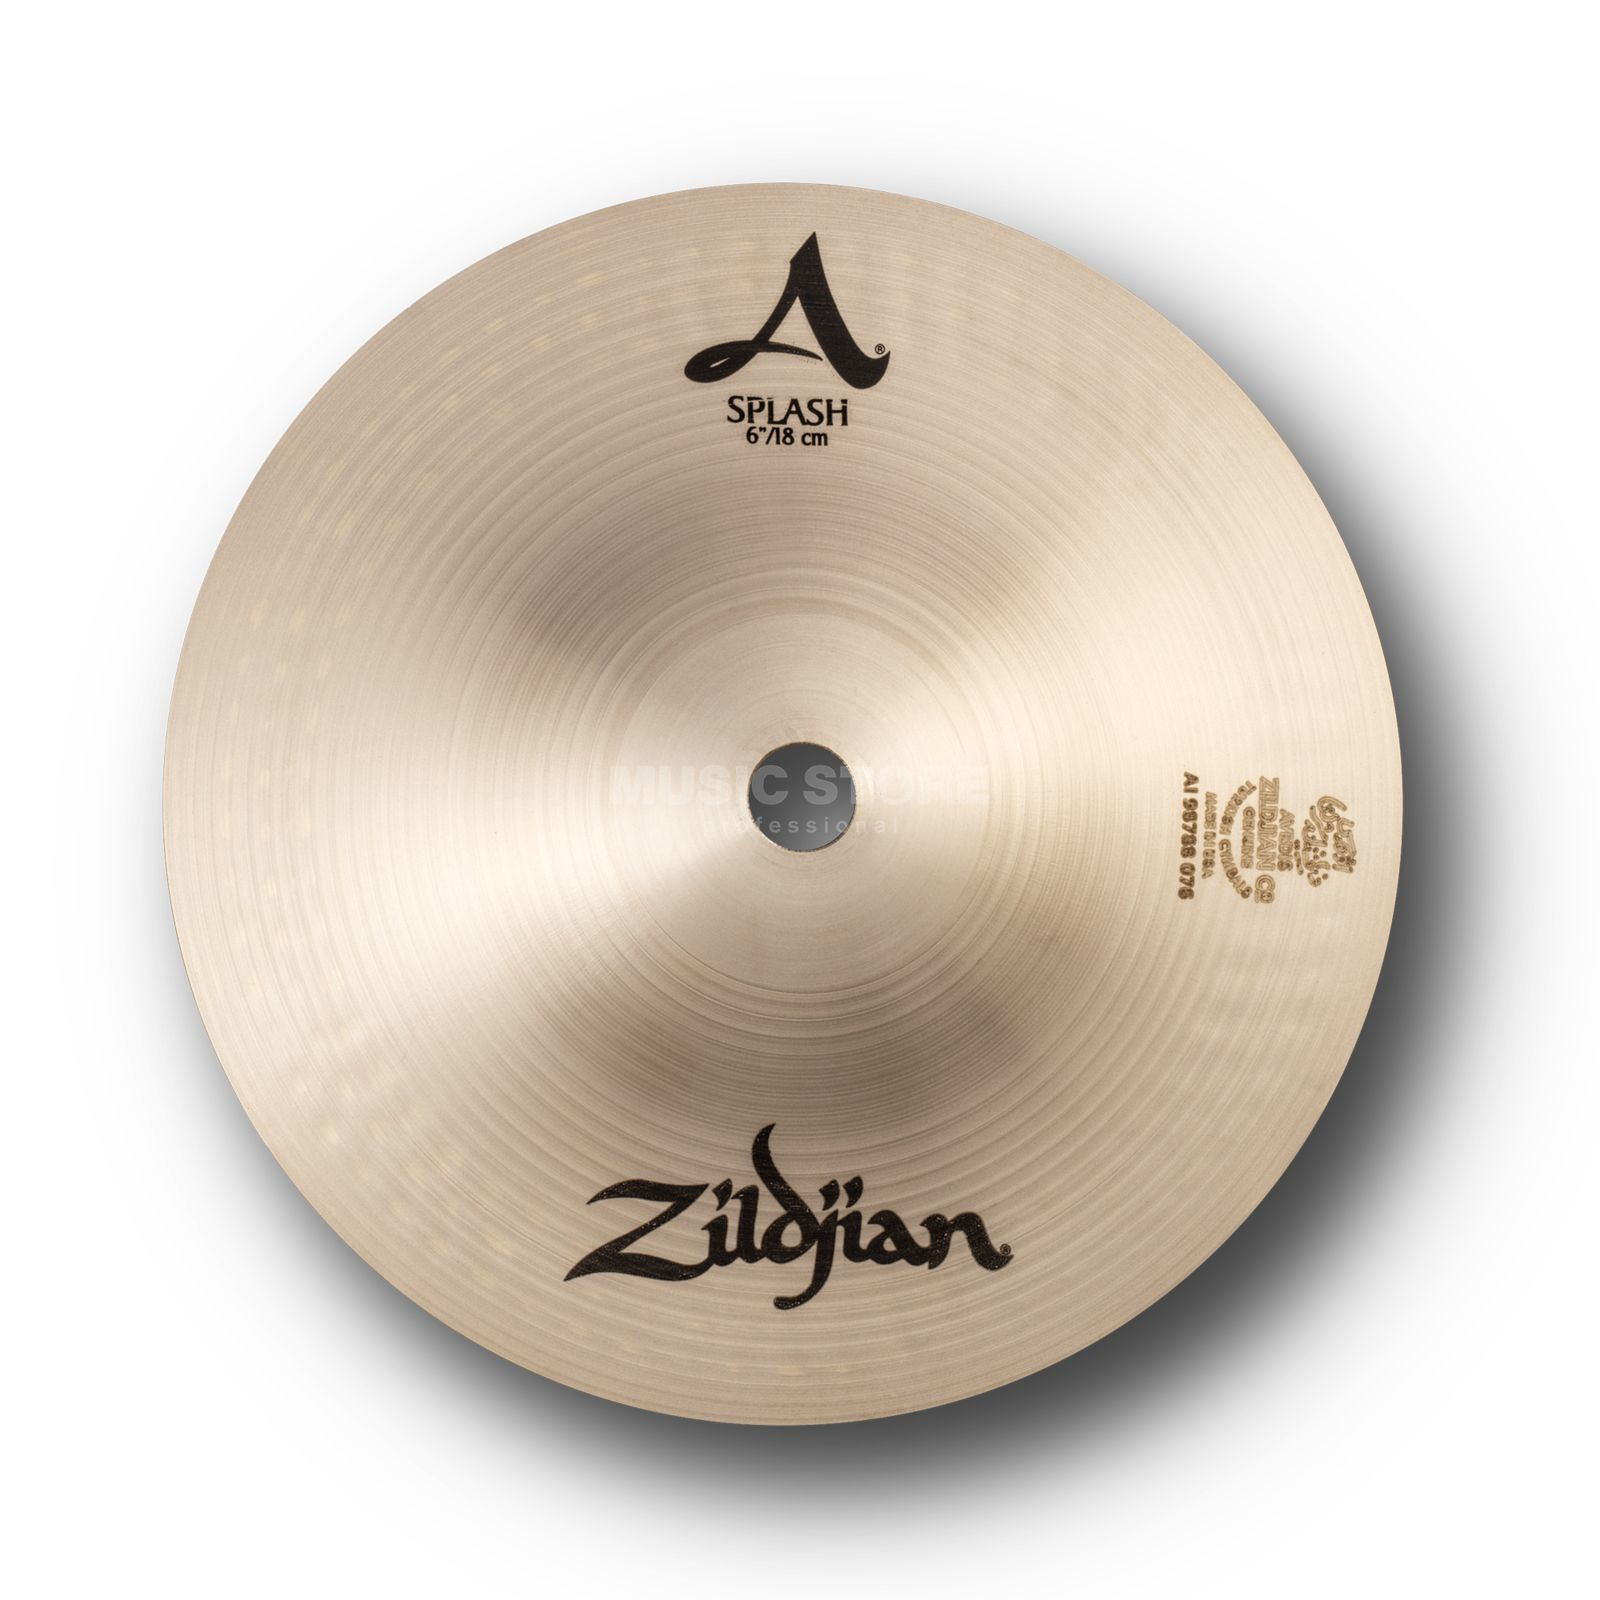 "Zildjian A' Zildjian Splash 6"", Traditional Finish Product Image"